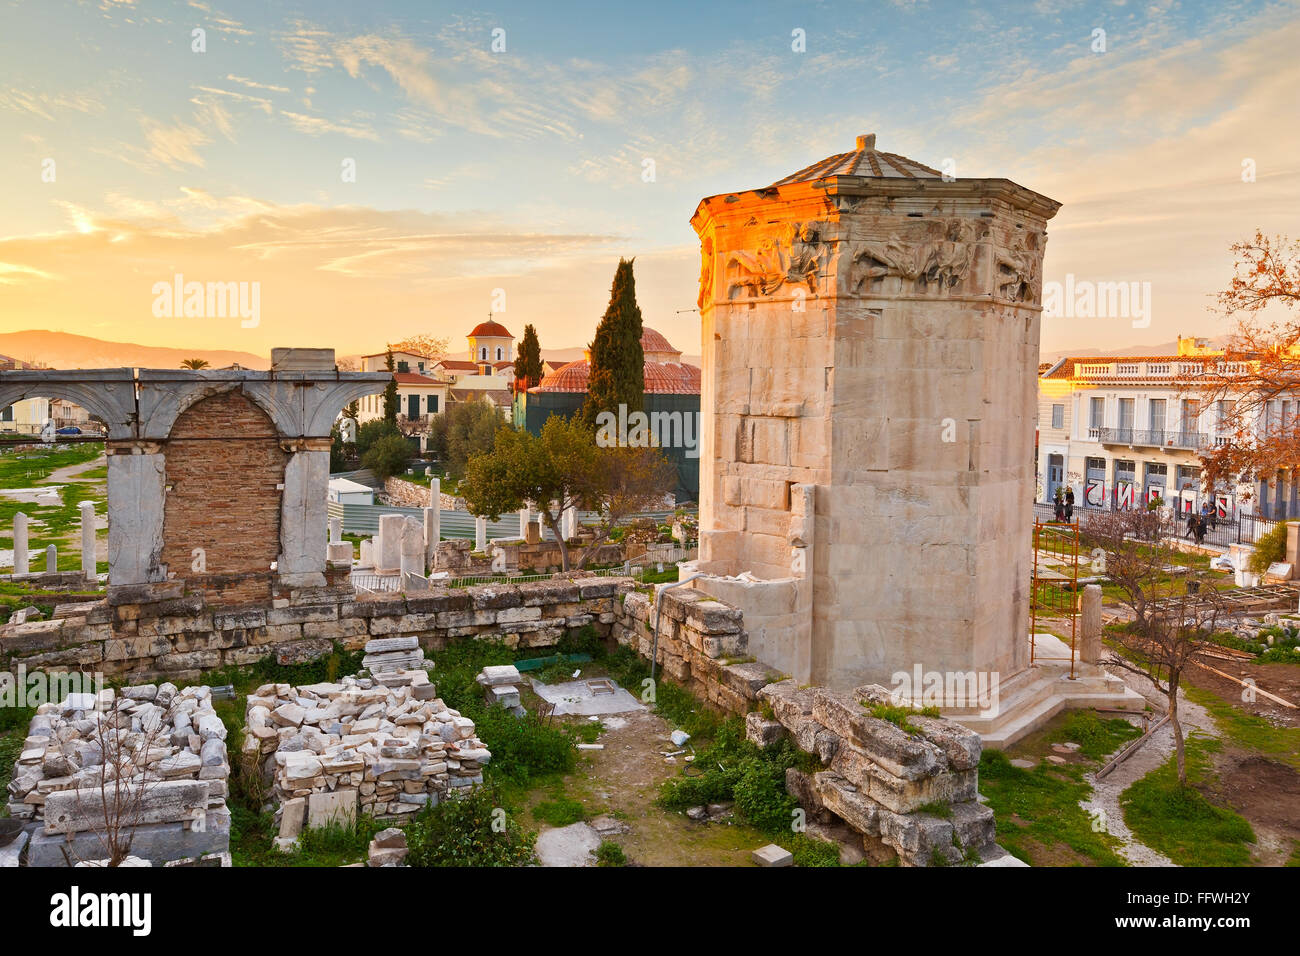 Remains of the Roman Agora and Tower of the Winds in Athens, Greece. - Stock Image